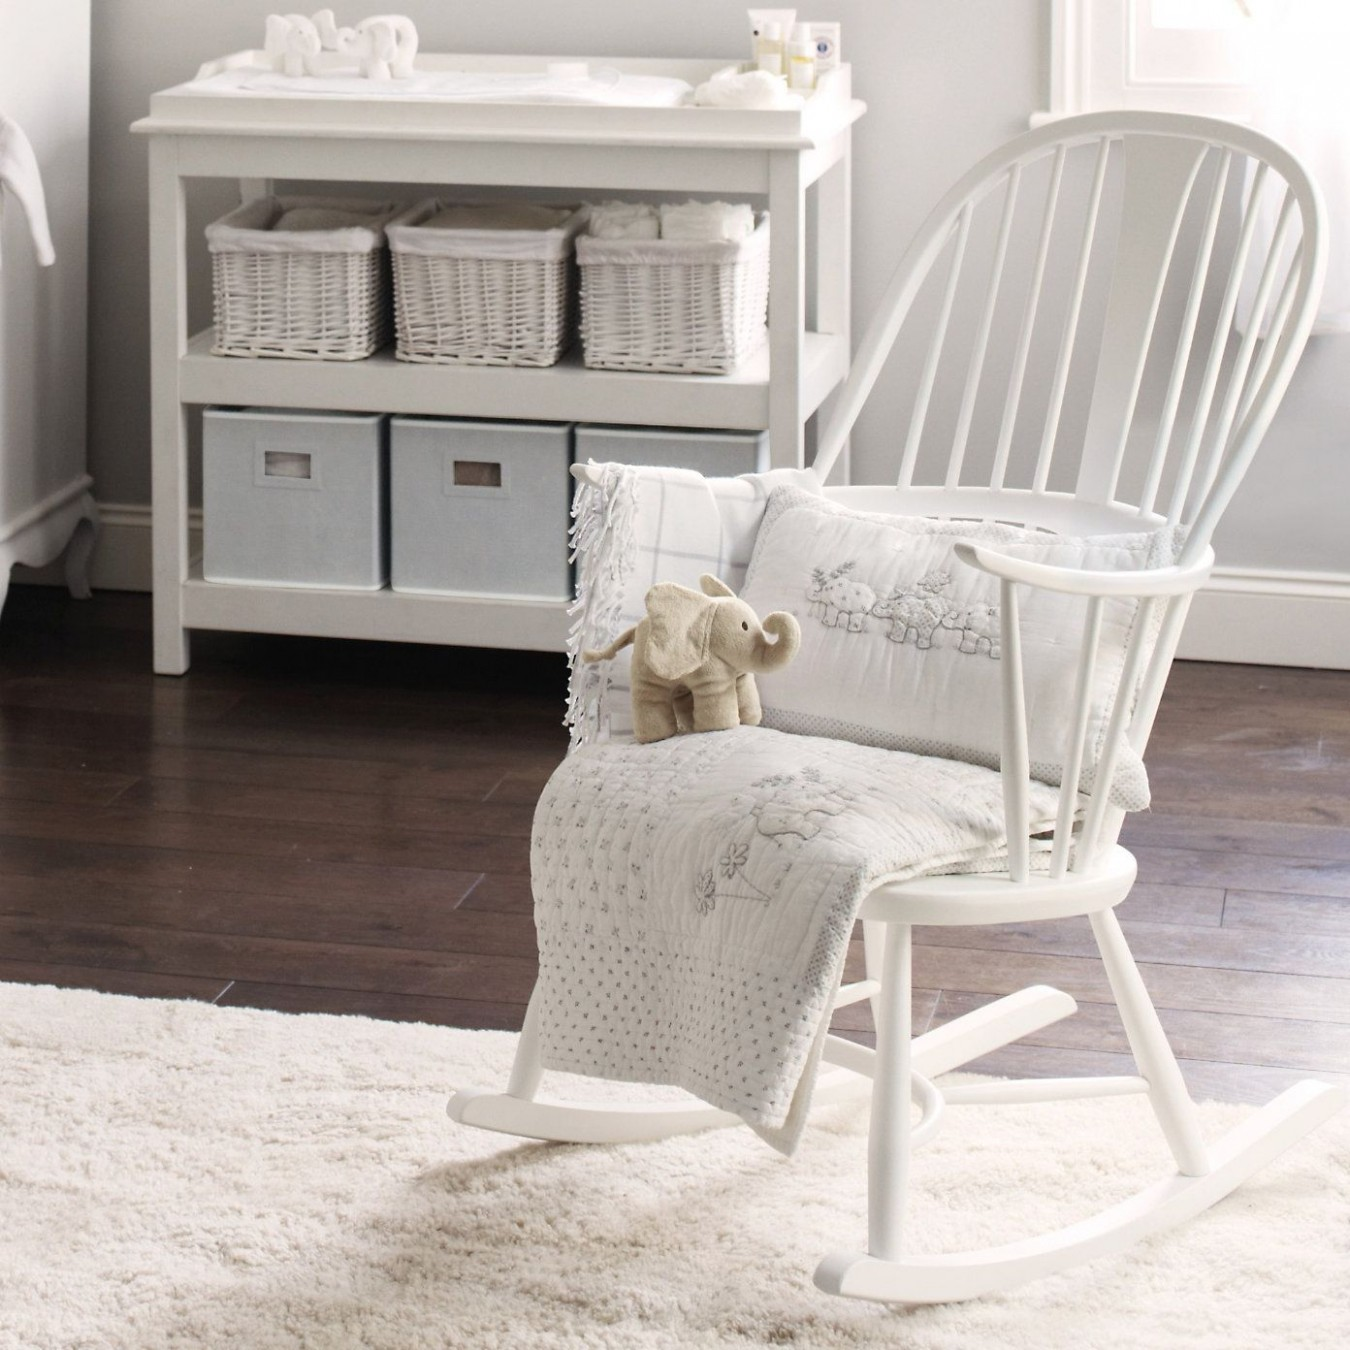 Ercol Rocking Chair - Ercol Furniture  The White Company  - Baby Room Rocking Chair